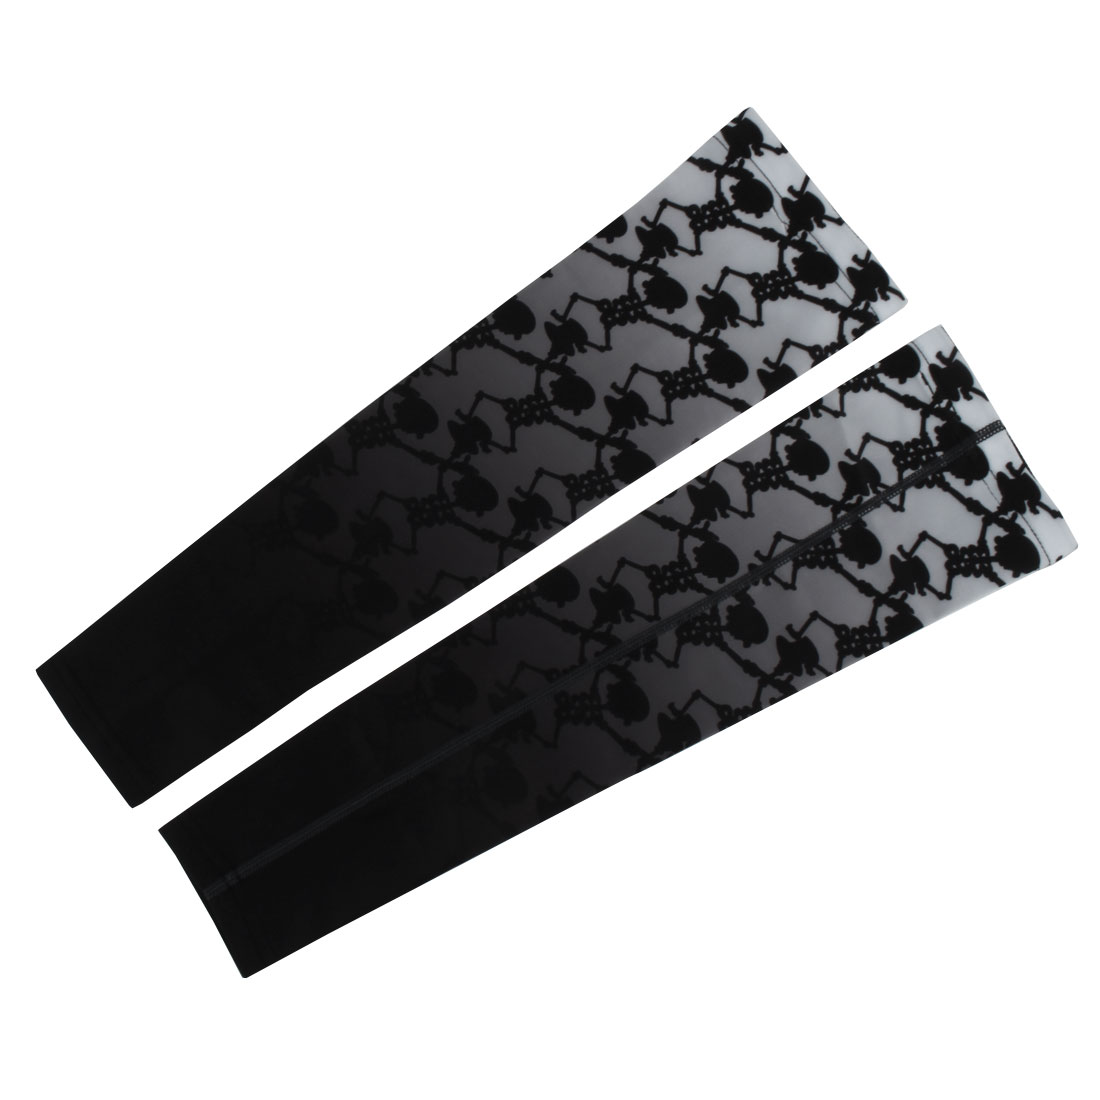 XINTOWN Authorized Unisex Cycling Football Arm Sleeves Cover Warmer #8 2XL Pair by Unique-Bargains